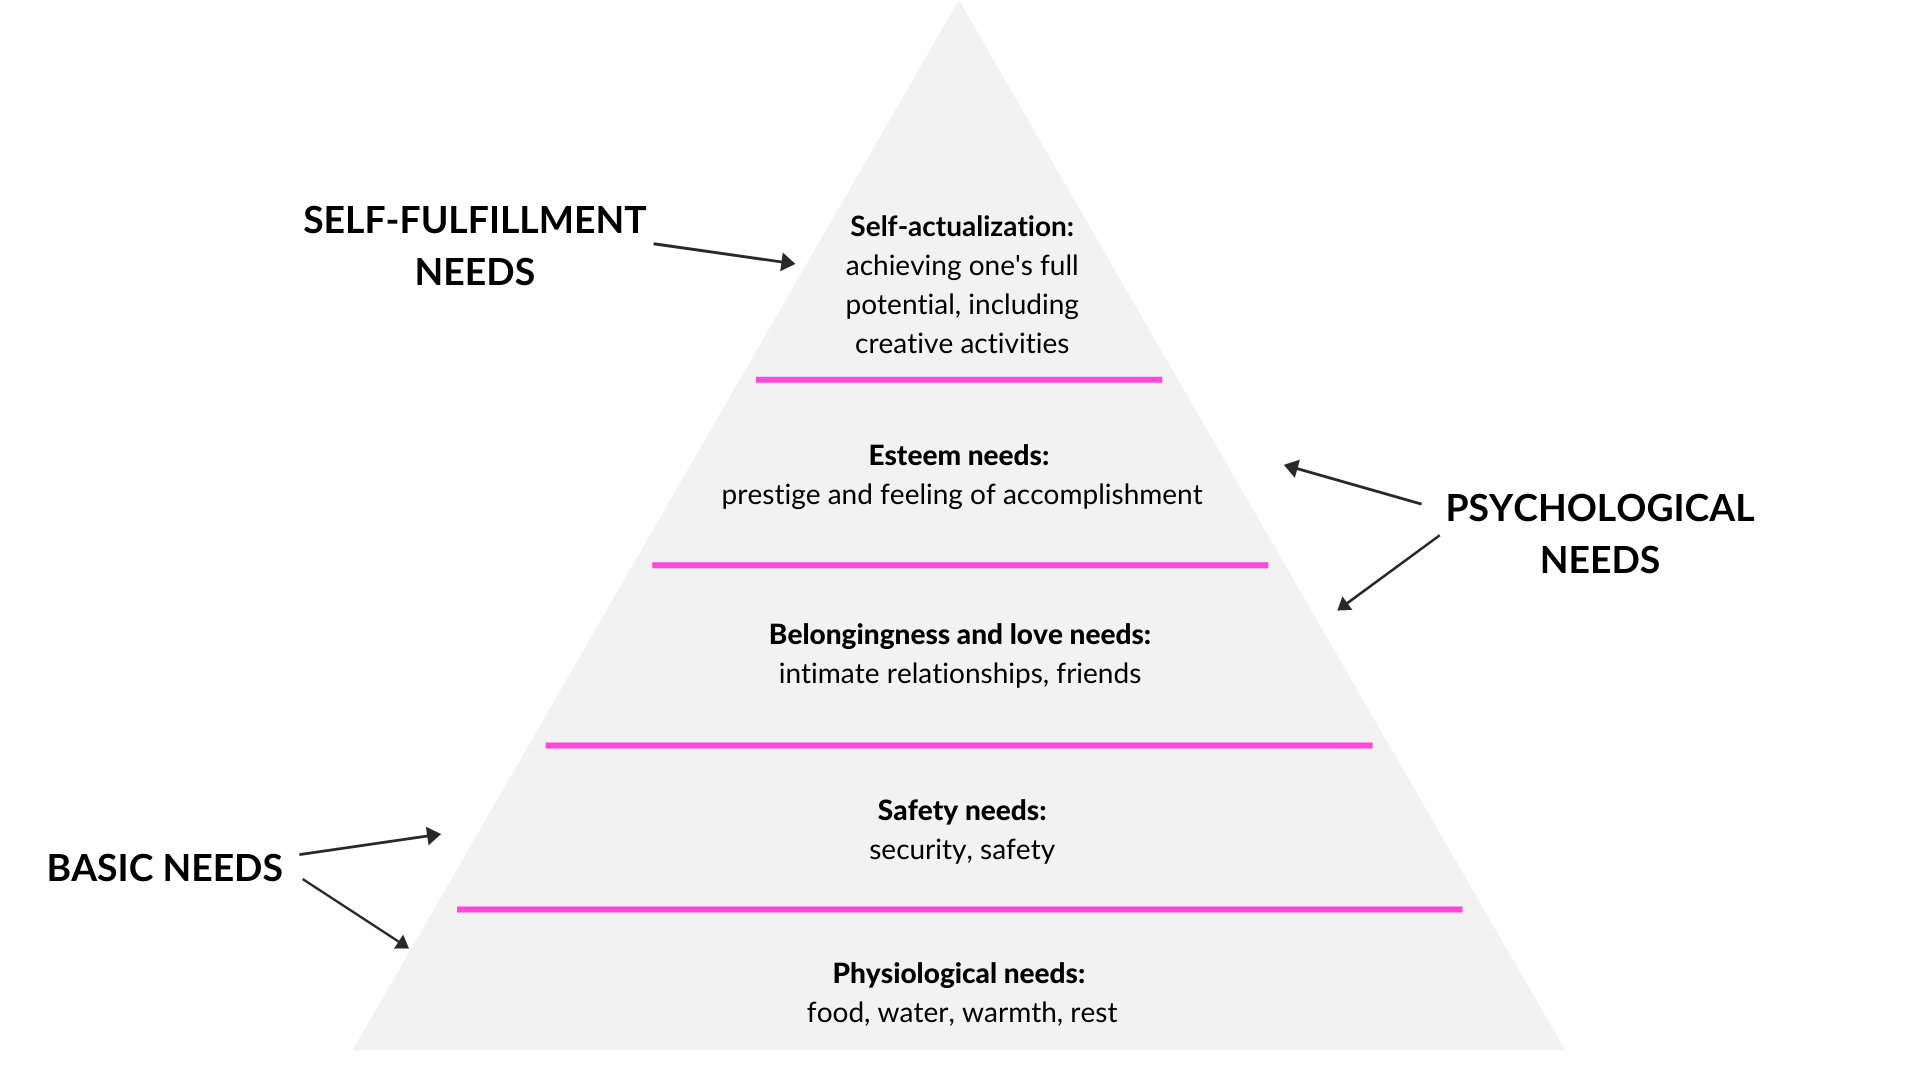 maslow's hierarchy of needs, self-fulfillment needs, basic needs, psychological needs